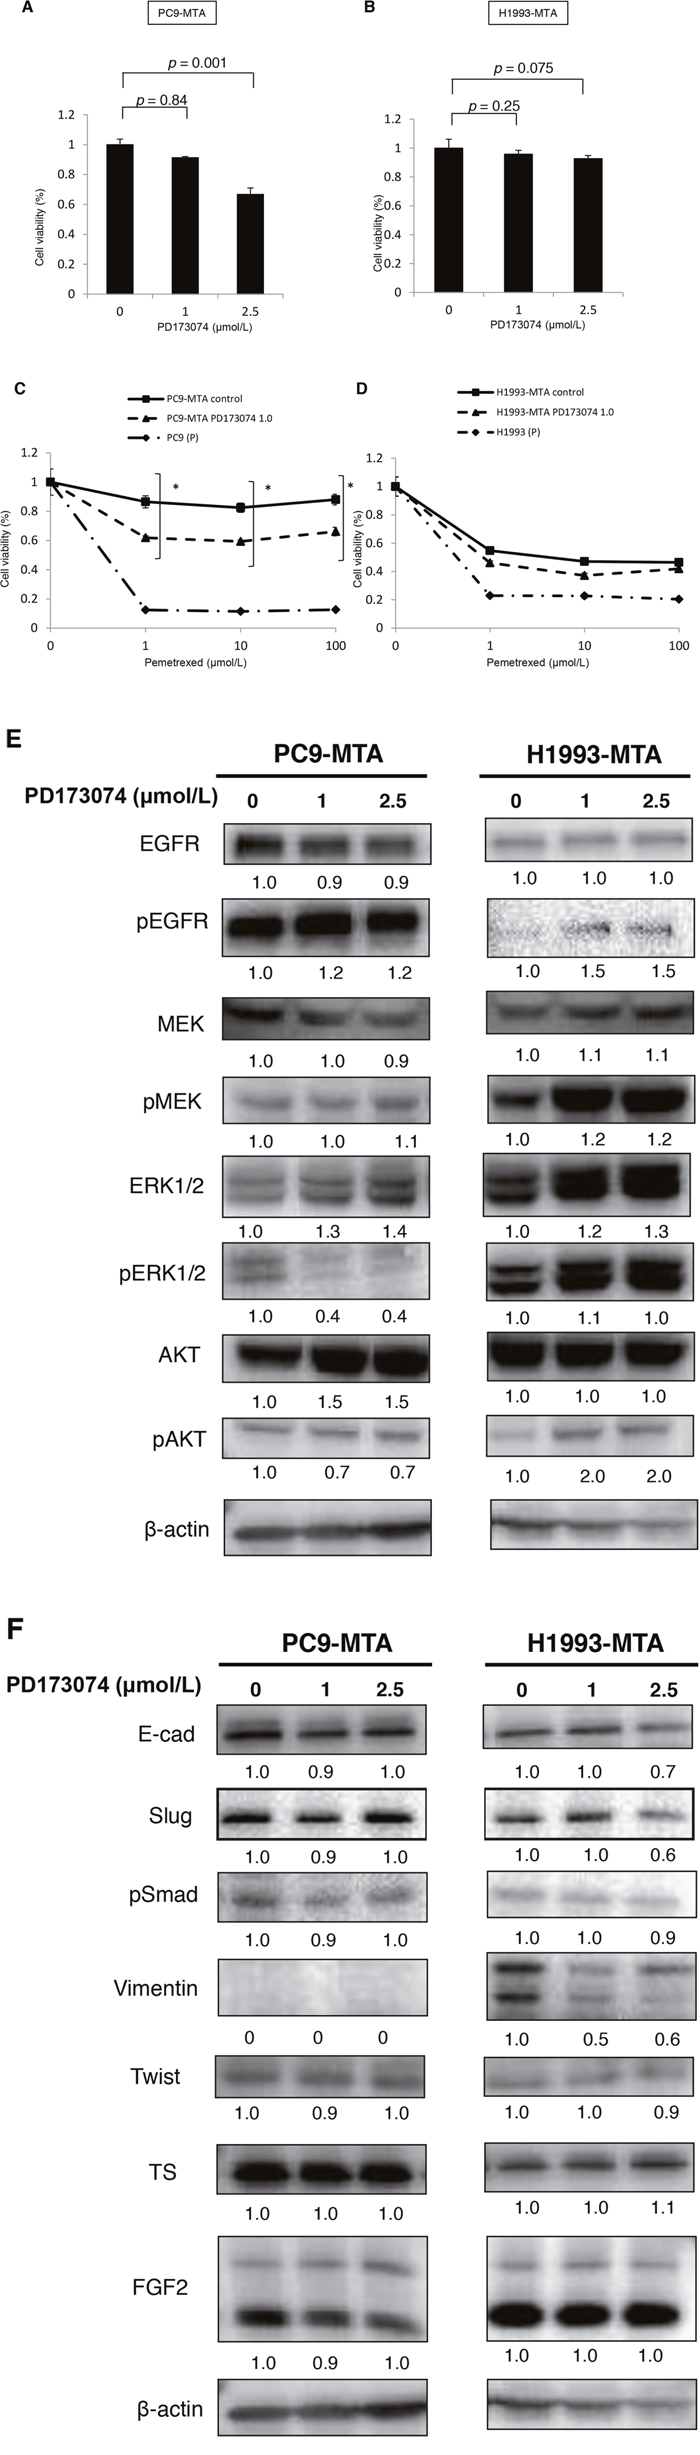 Effect of an FGFR1 inhibitor (PD173074) on the sensitivity to pemetrexed in pemetrexed-resistant lung cancer cells.